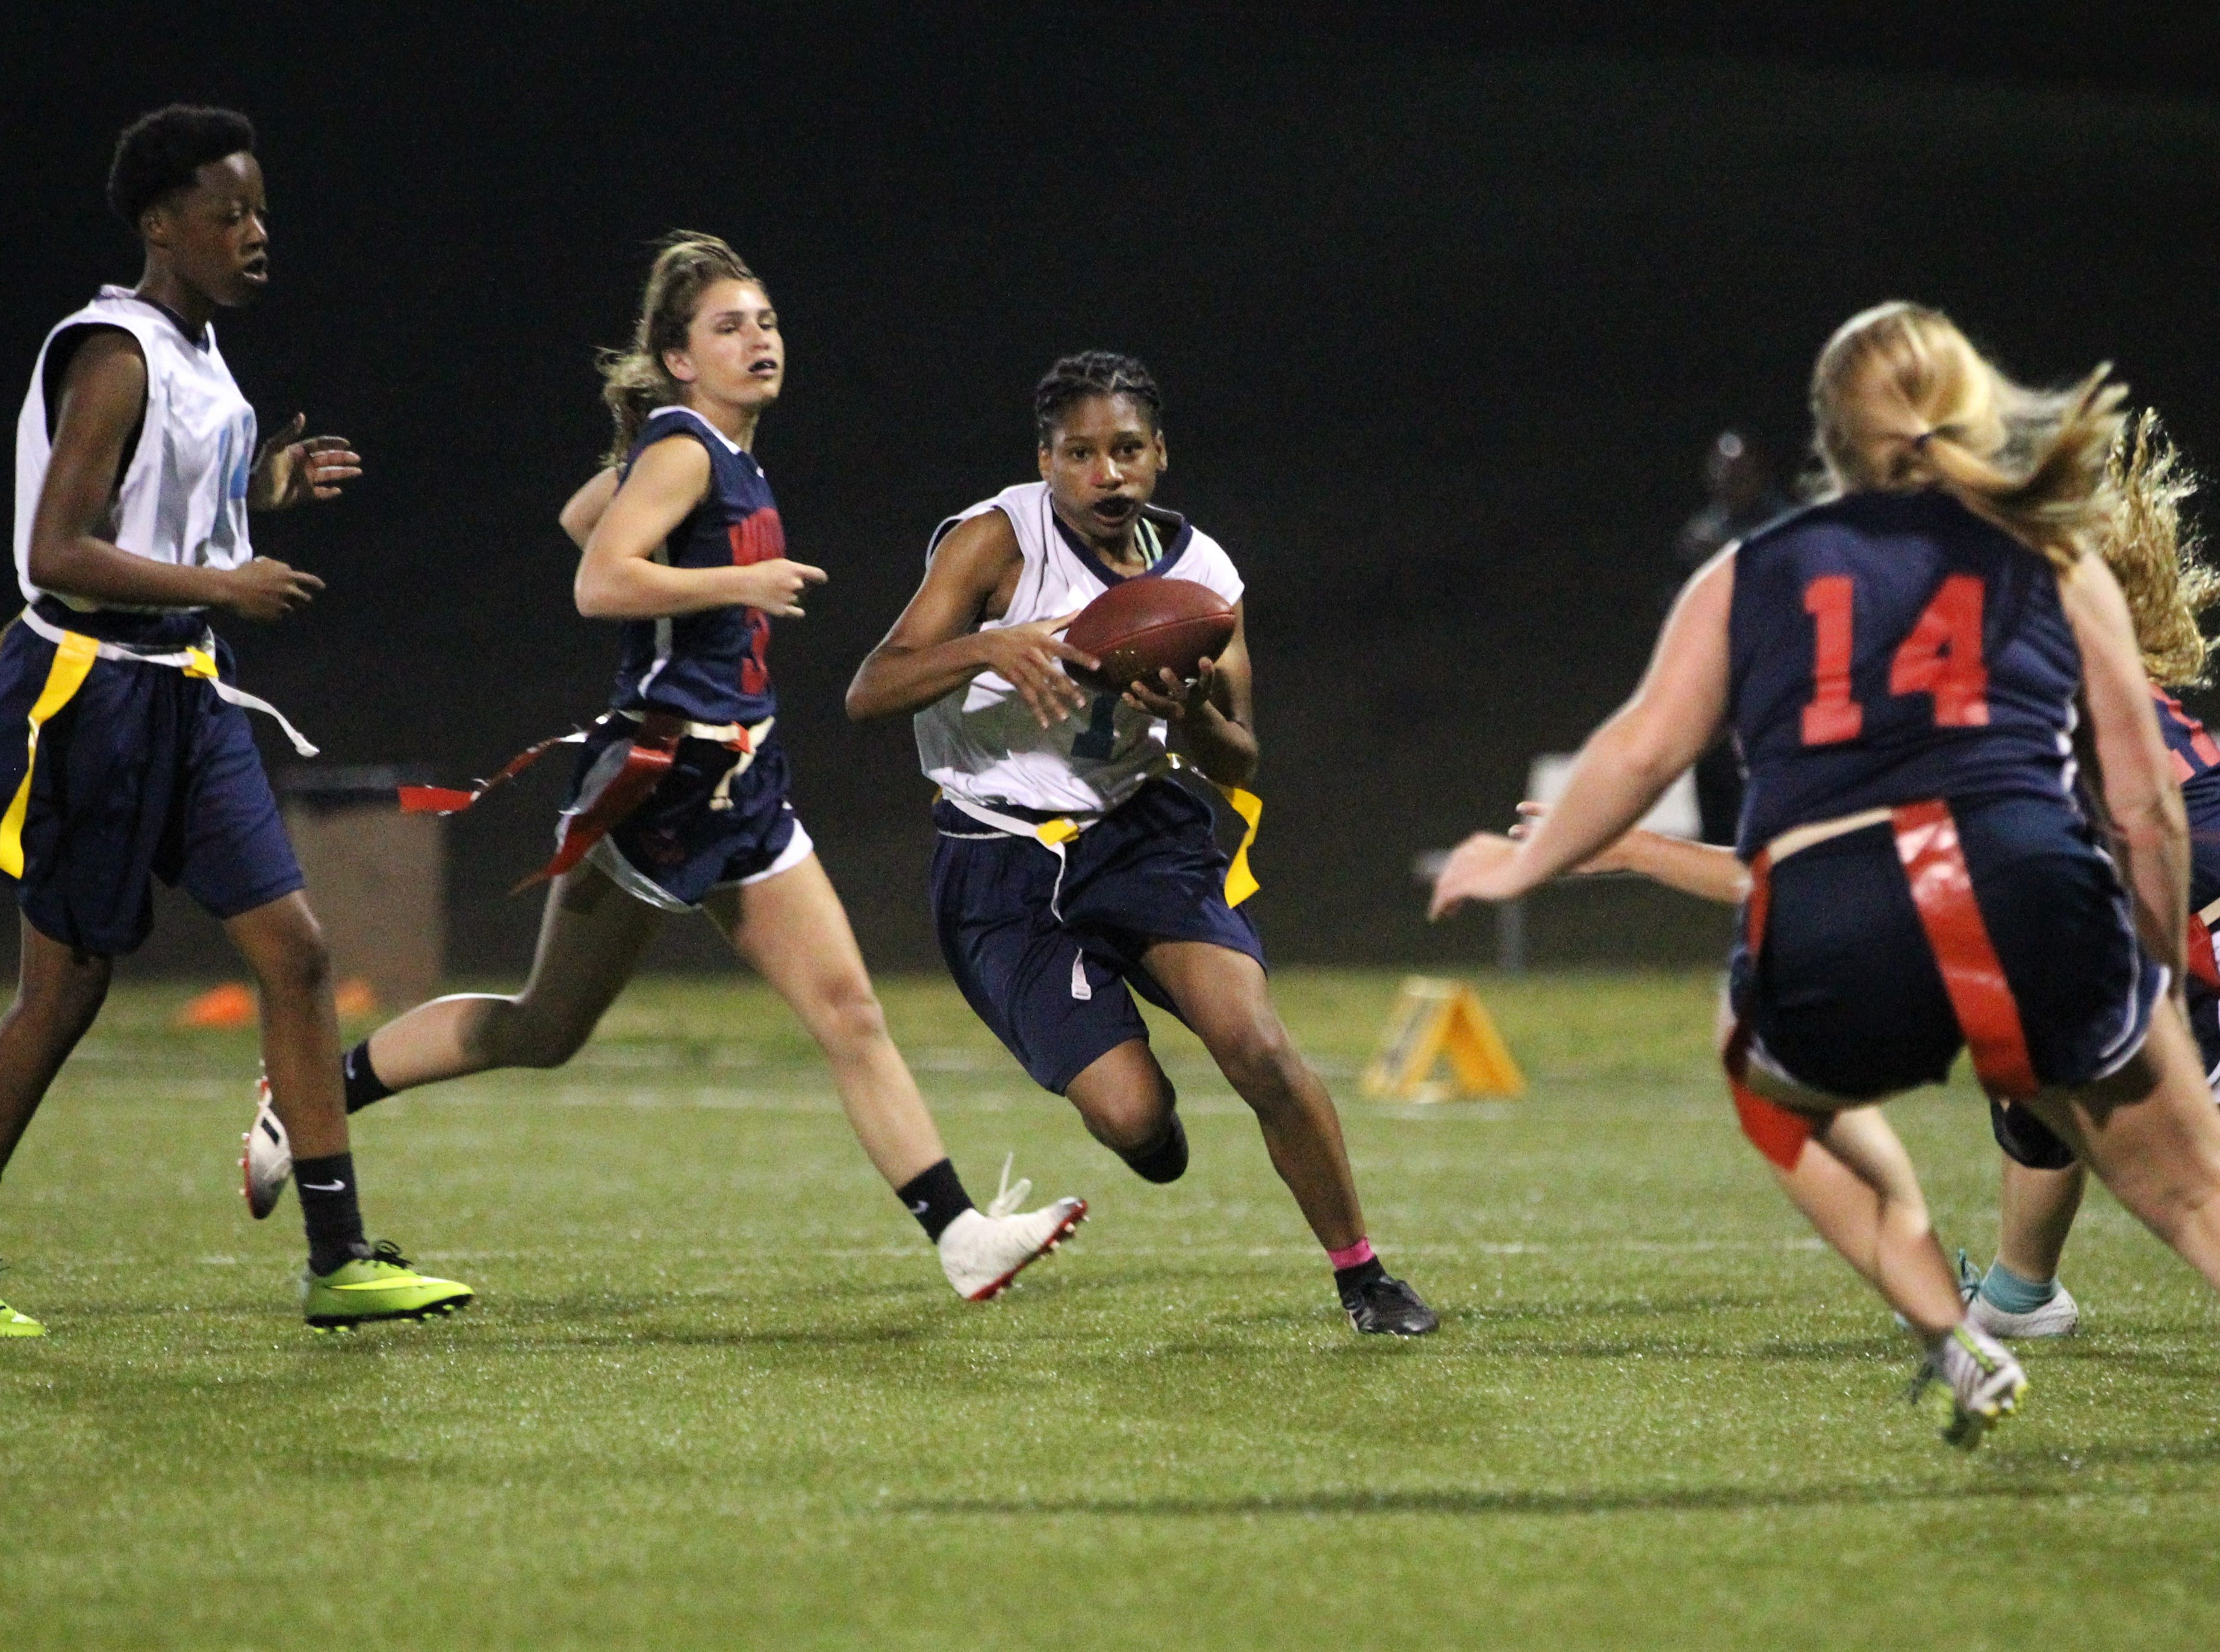 Gadsden County running back Justice Butler runs for a gain as the Jaguars and Wakulla play during the 2019 flag football preseason classic at Florida A&M's intramural turf fields on Feb. 27, 2019.